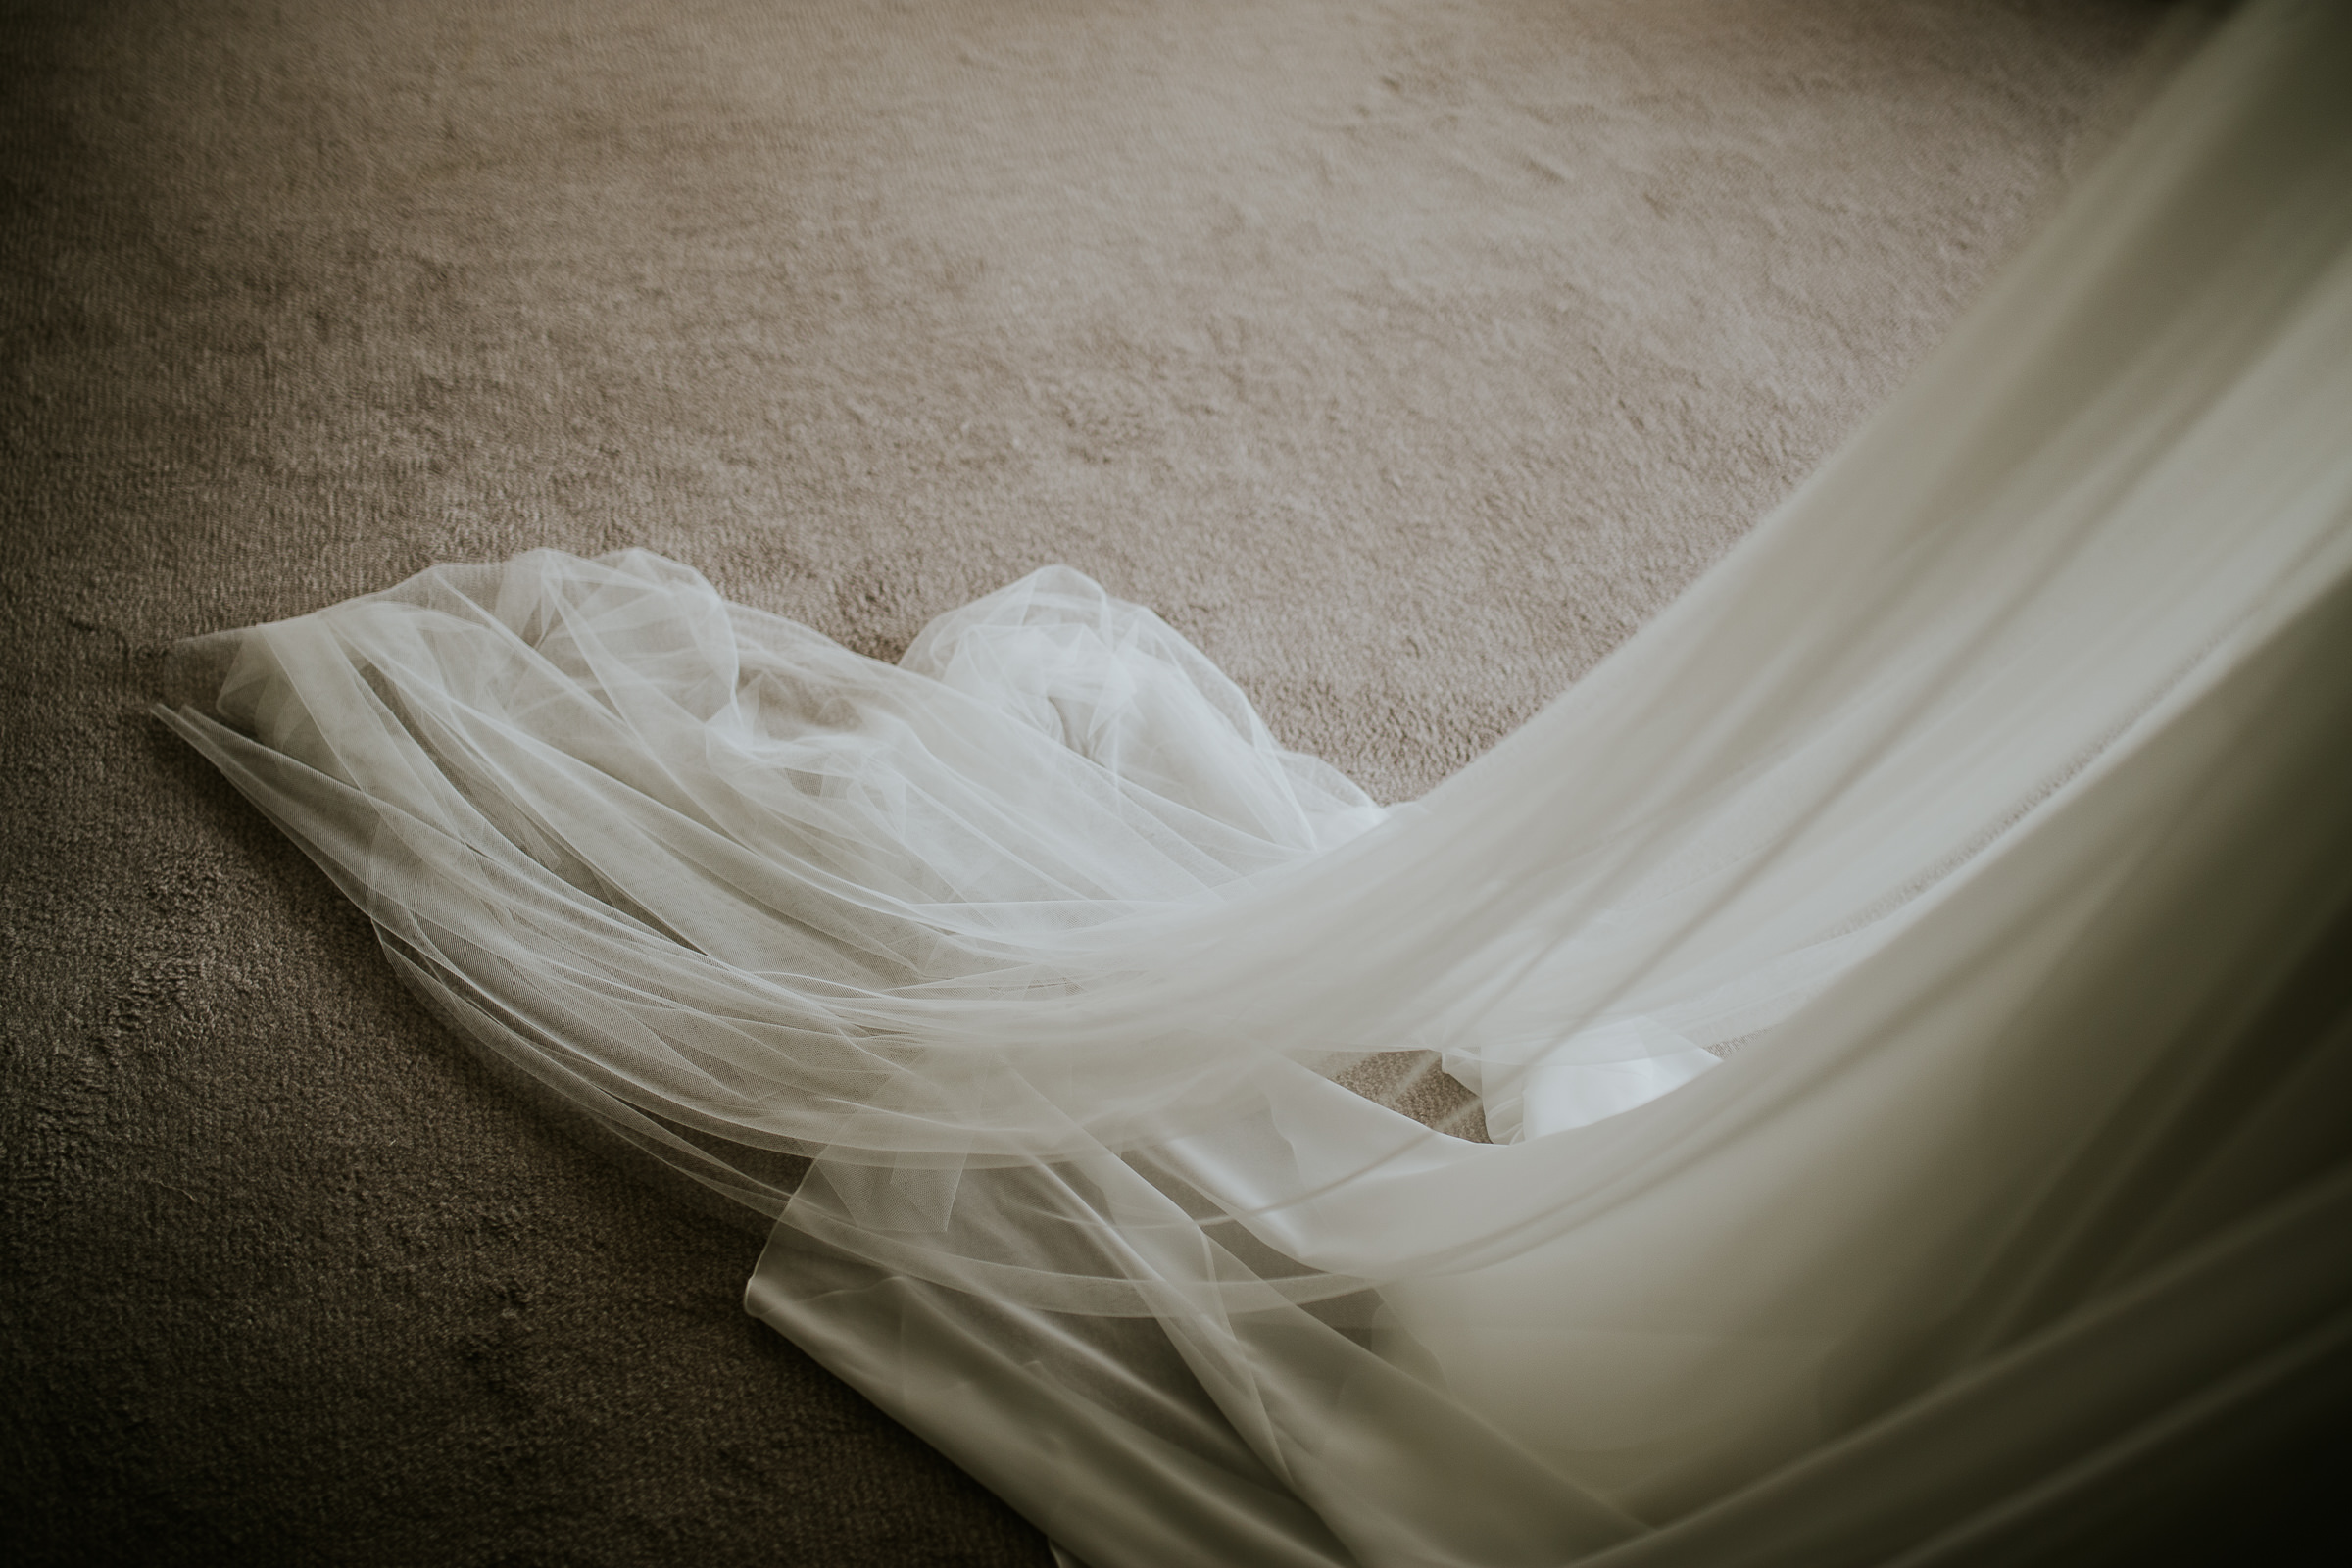 Detail of a wedding dress and the carpet